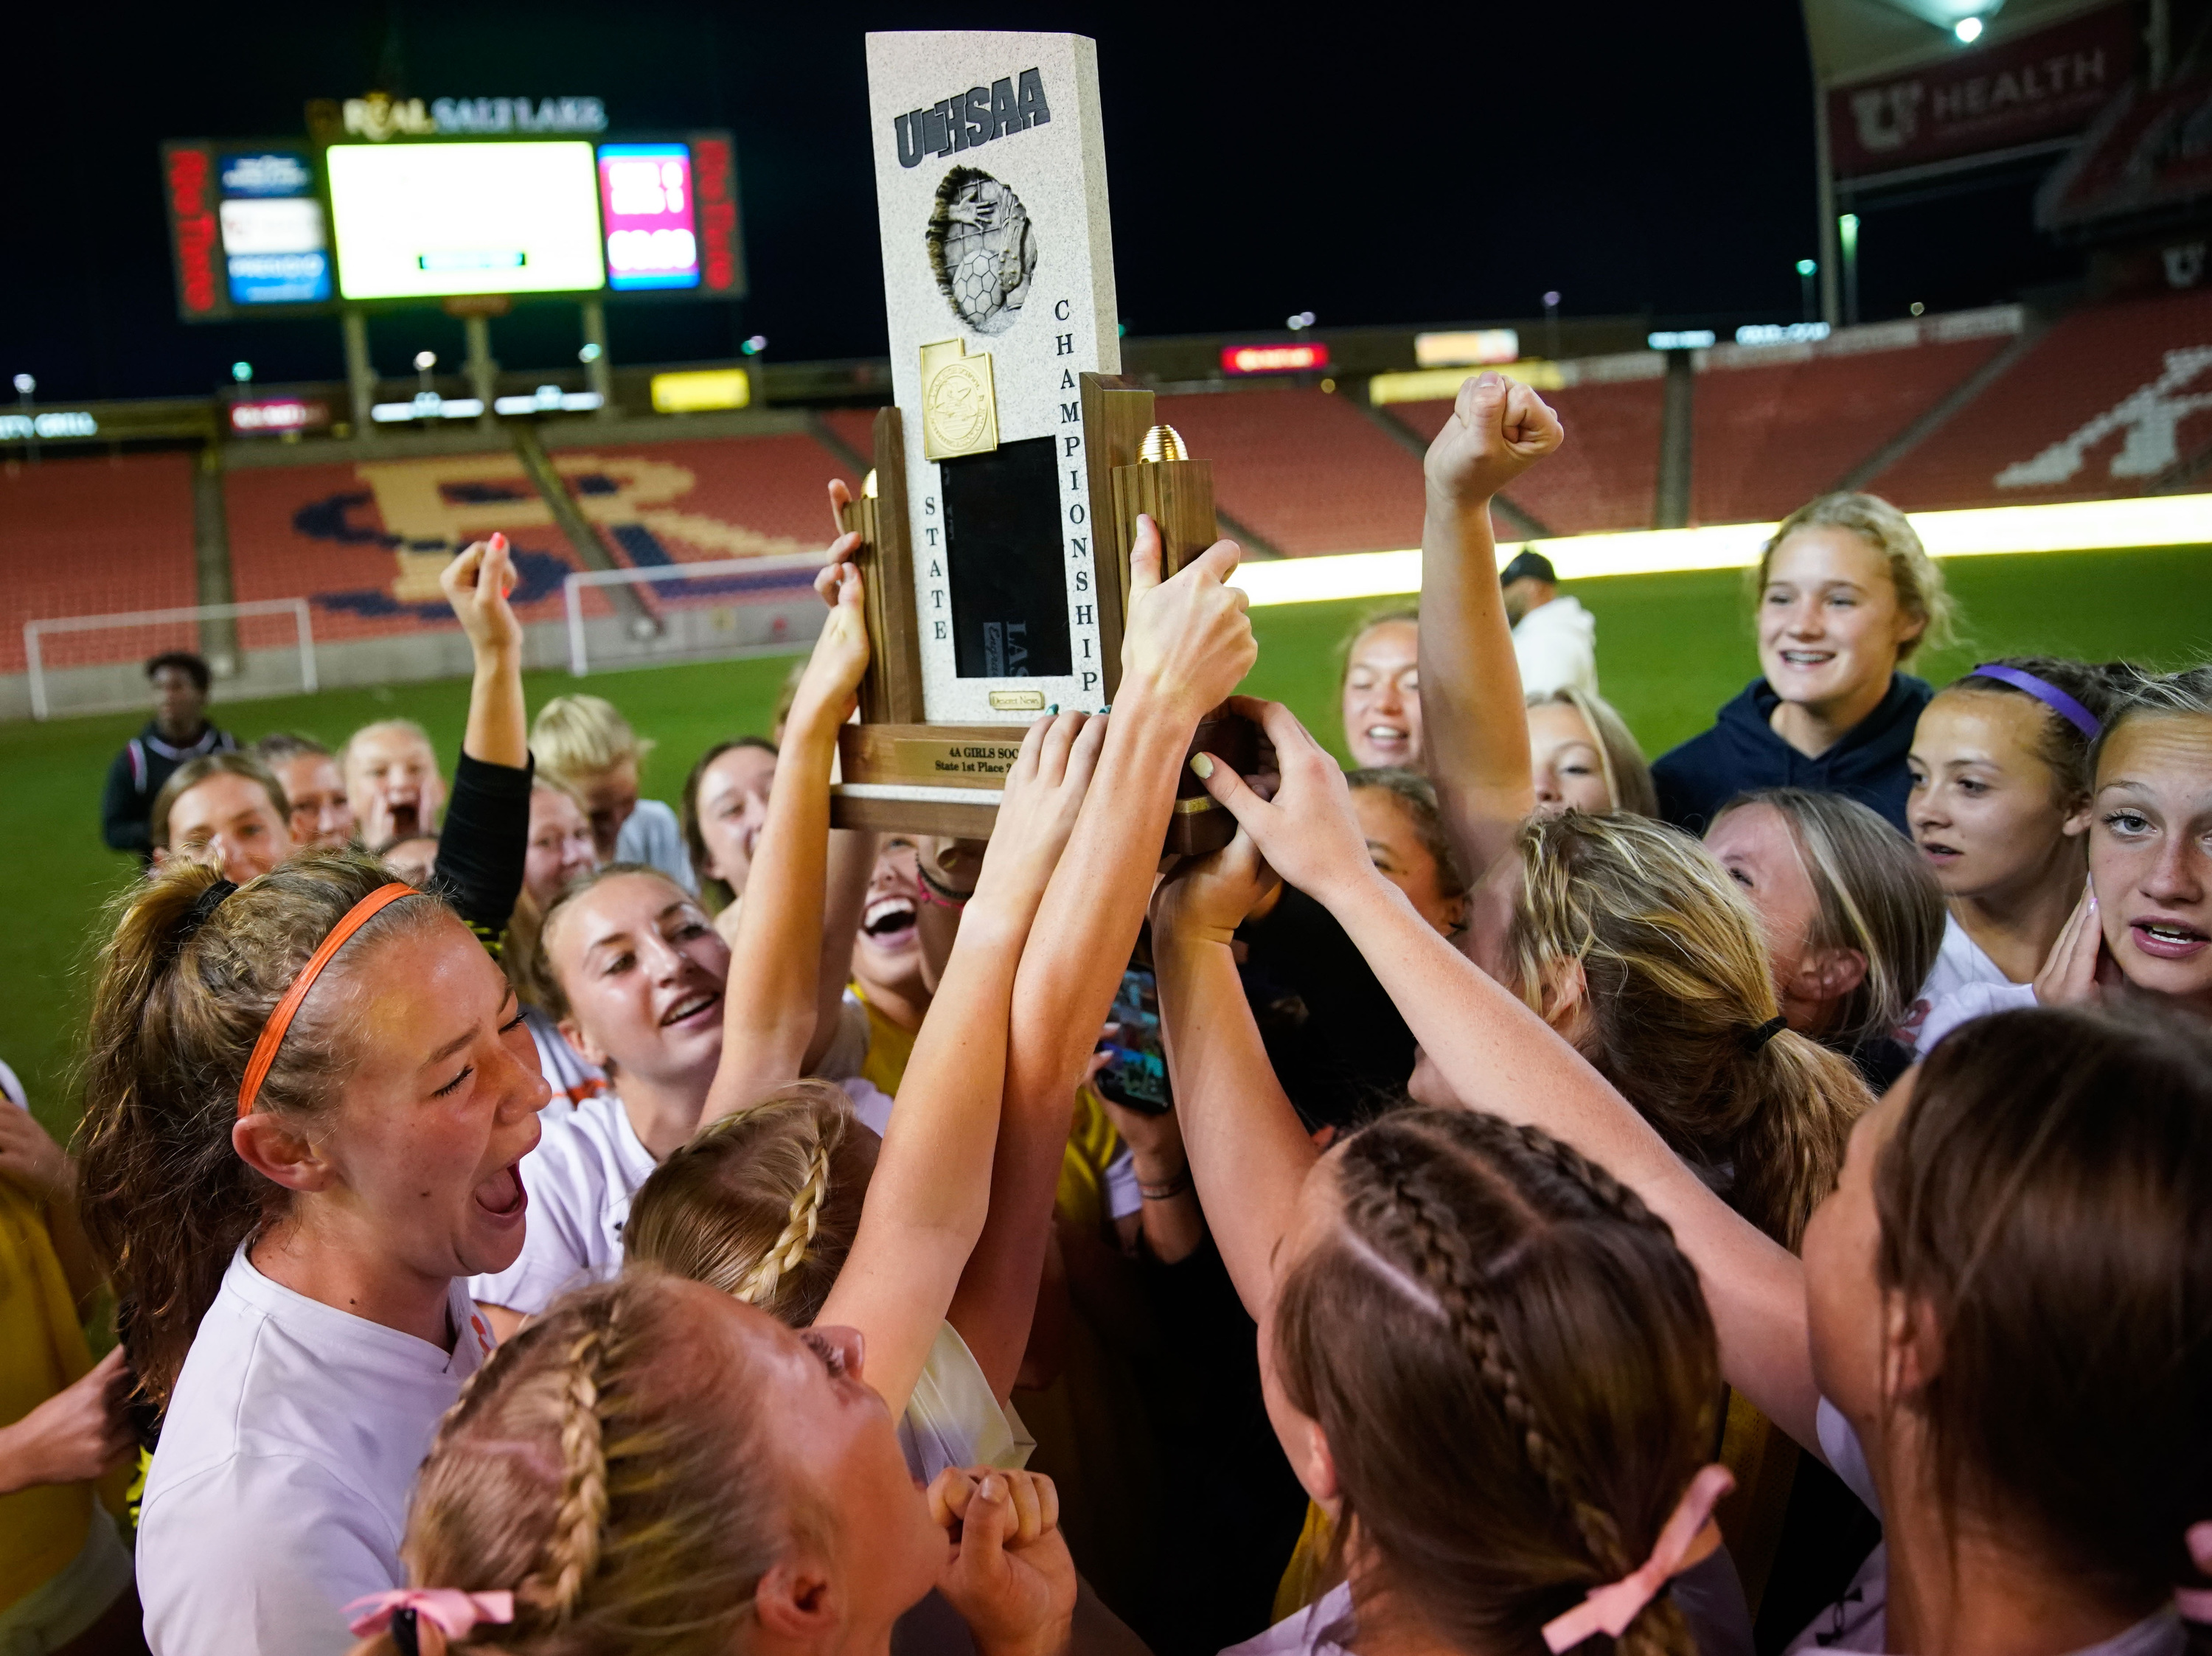 The Mountain Crest soccer team cheers after winning the 4A girls soccer state championship game against Crimson Cliffsat Rio Tinto Stadium in Sandy on Friday, Oct. 22, 2021.